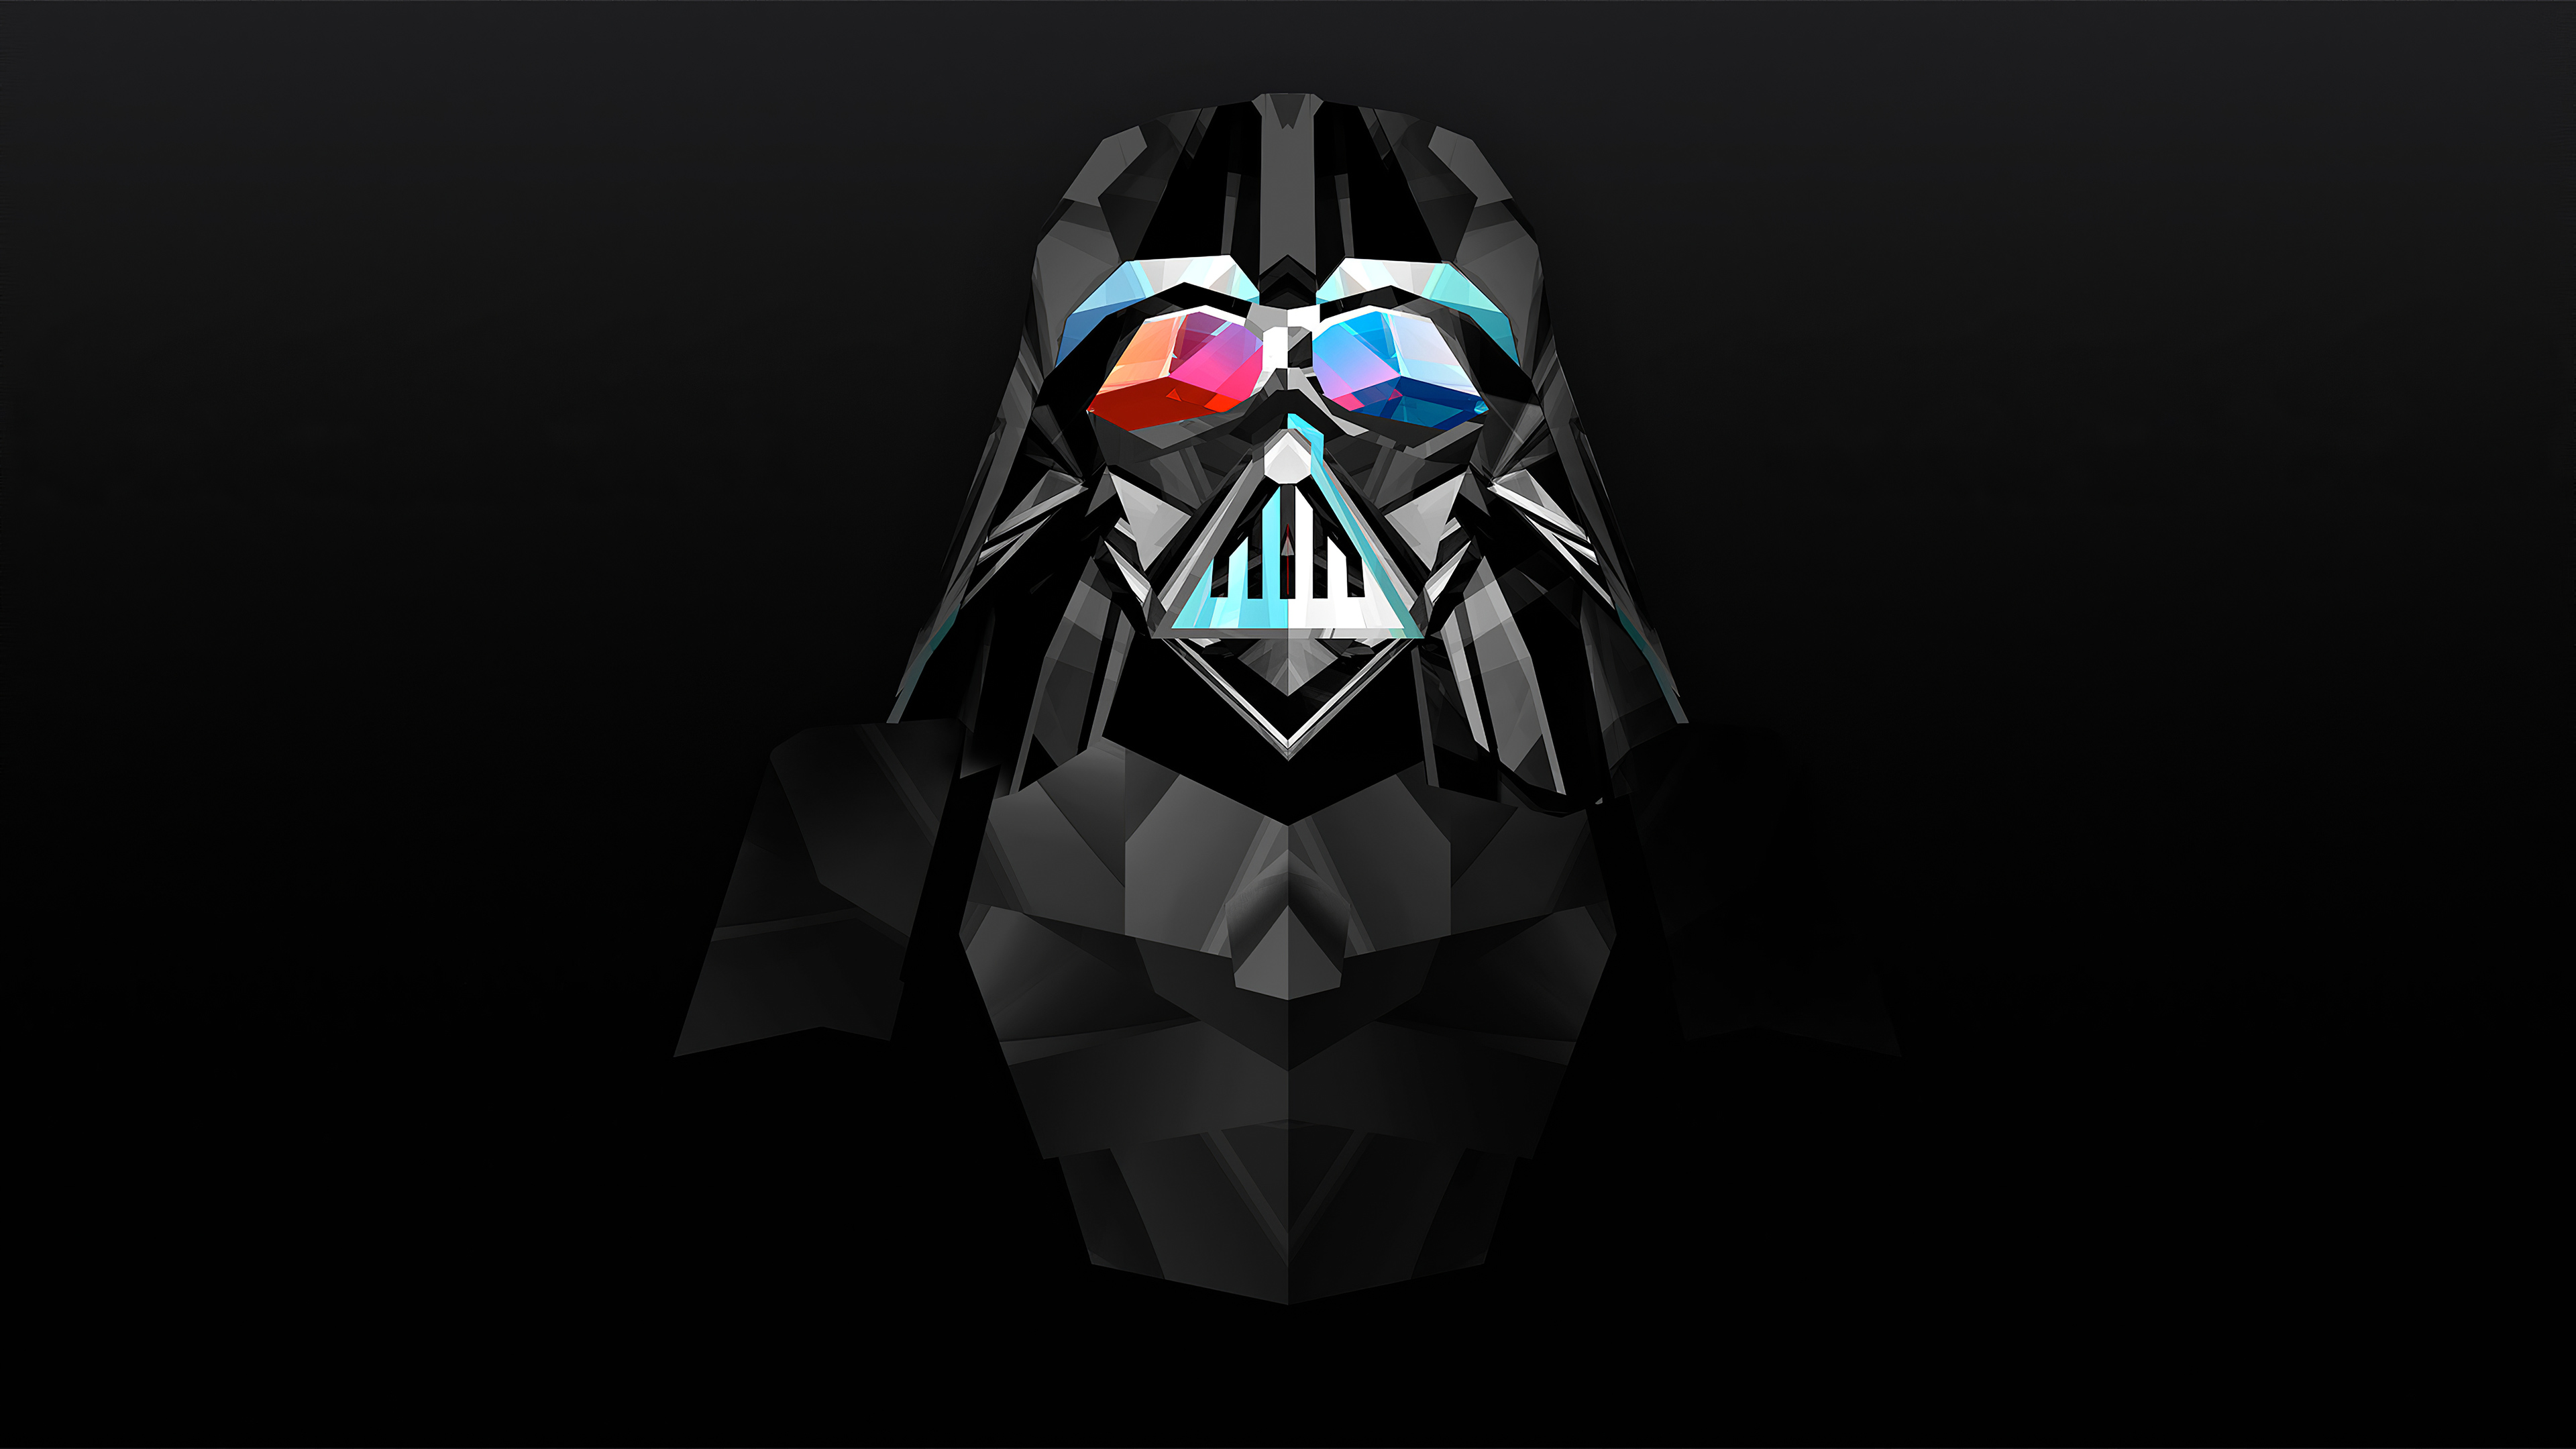 Darth Vader Star Wars Justin Maller Art Hd Movies 4k Wallpapers Images Backgrounds Photos And Pictures